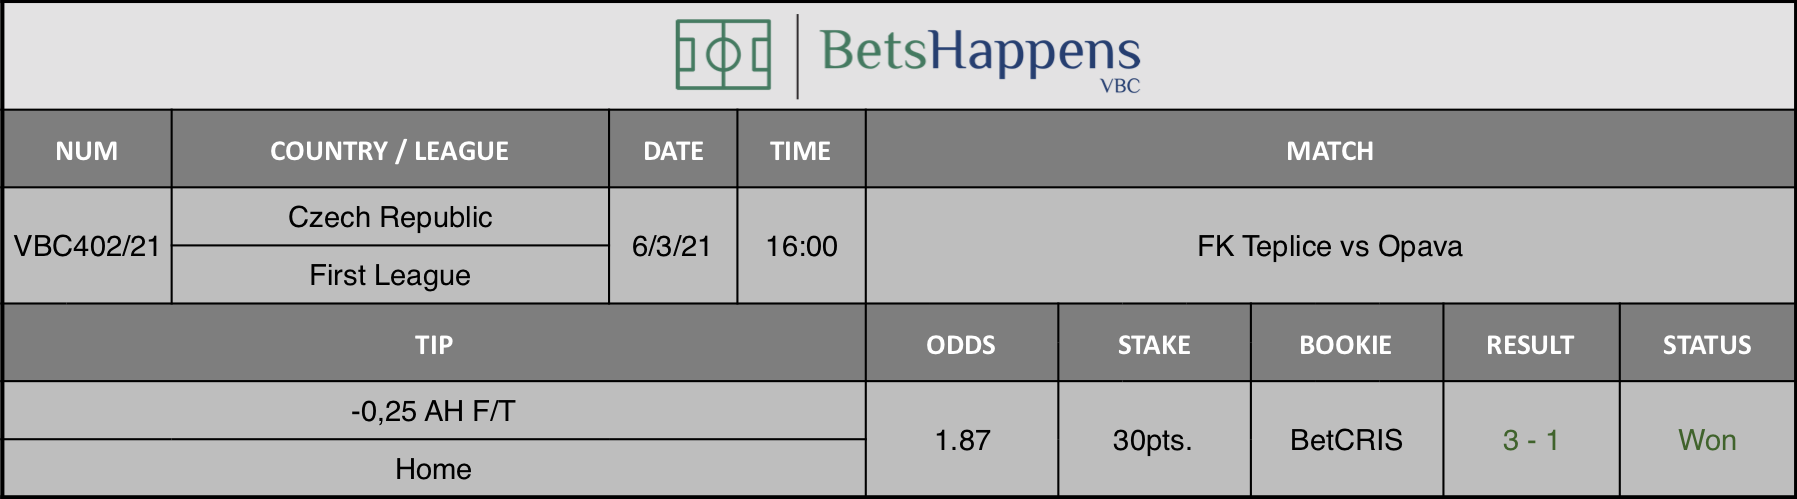 Results of our tip for the FK Teplice vs Opava match where -0,25 AH F/T Home is recommended.